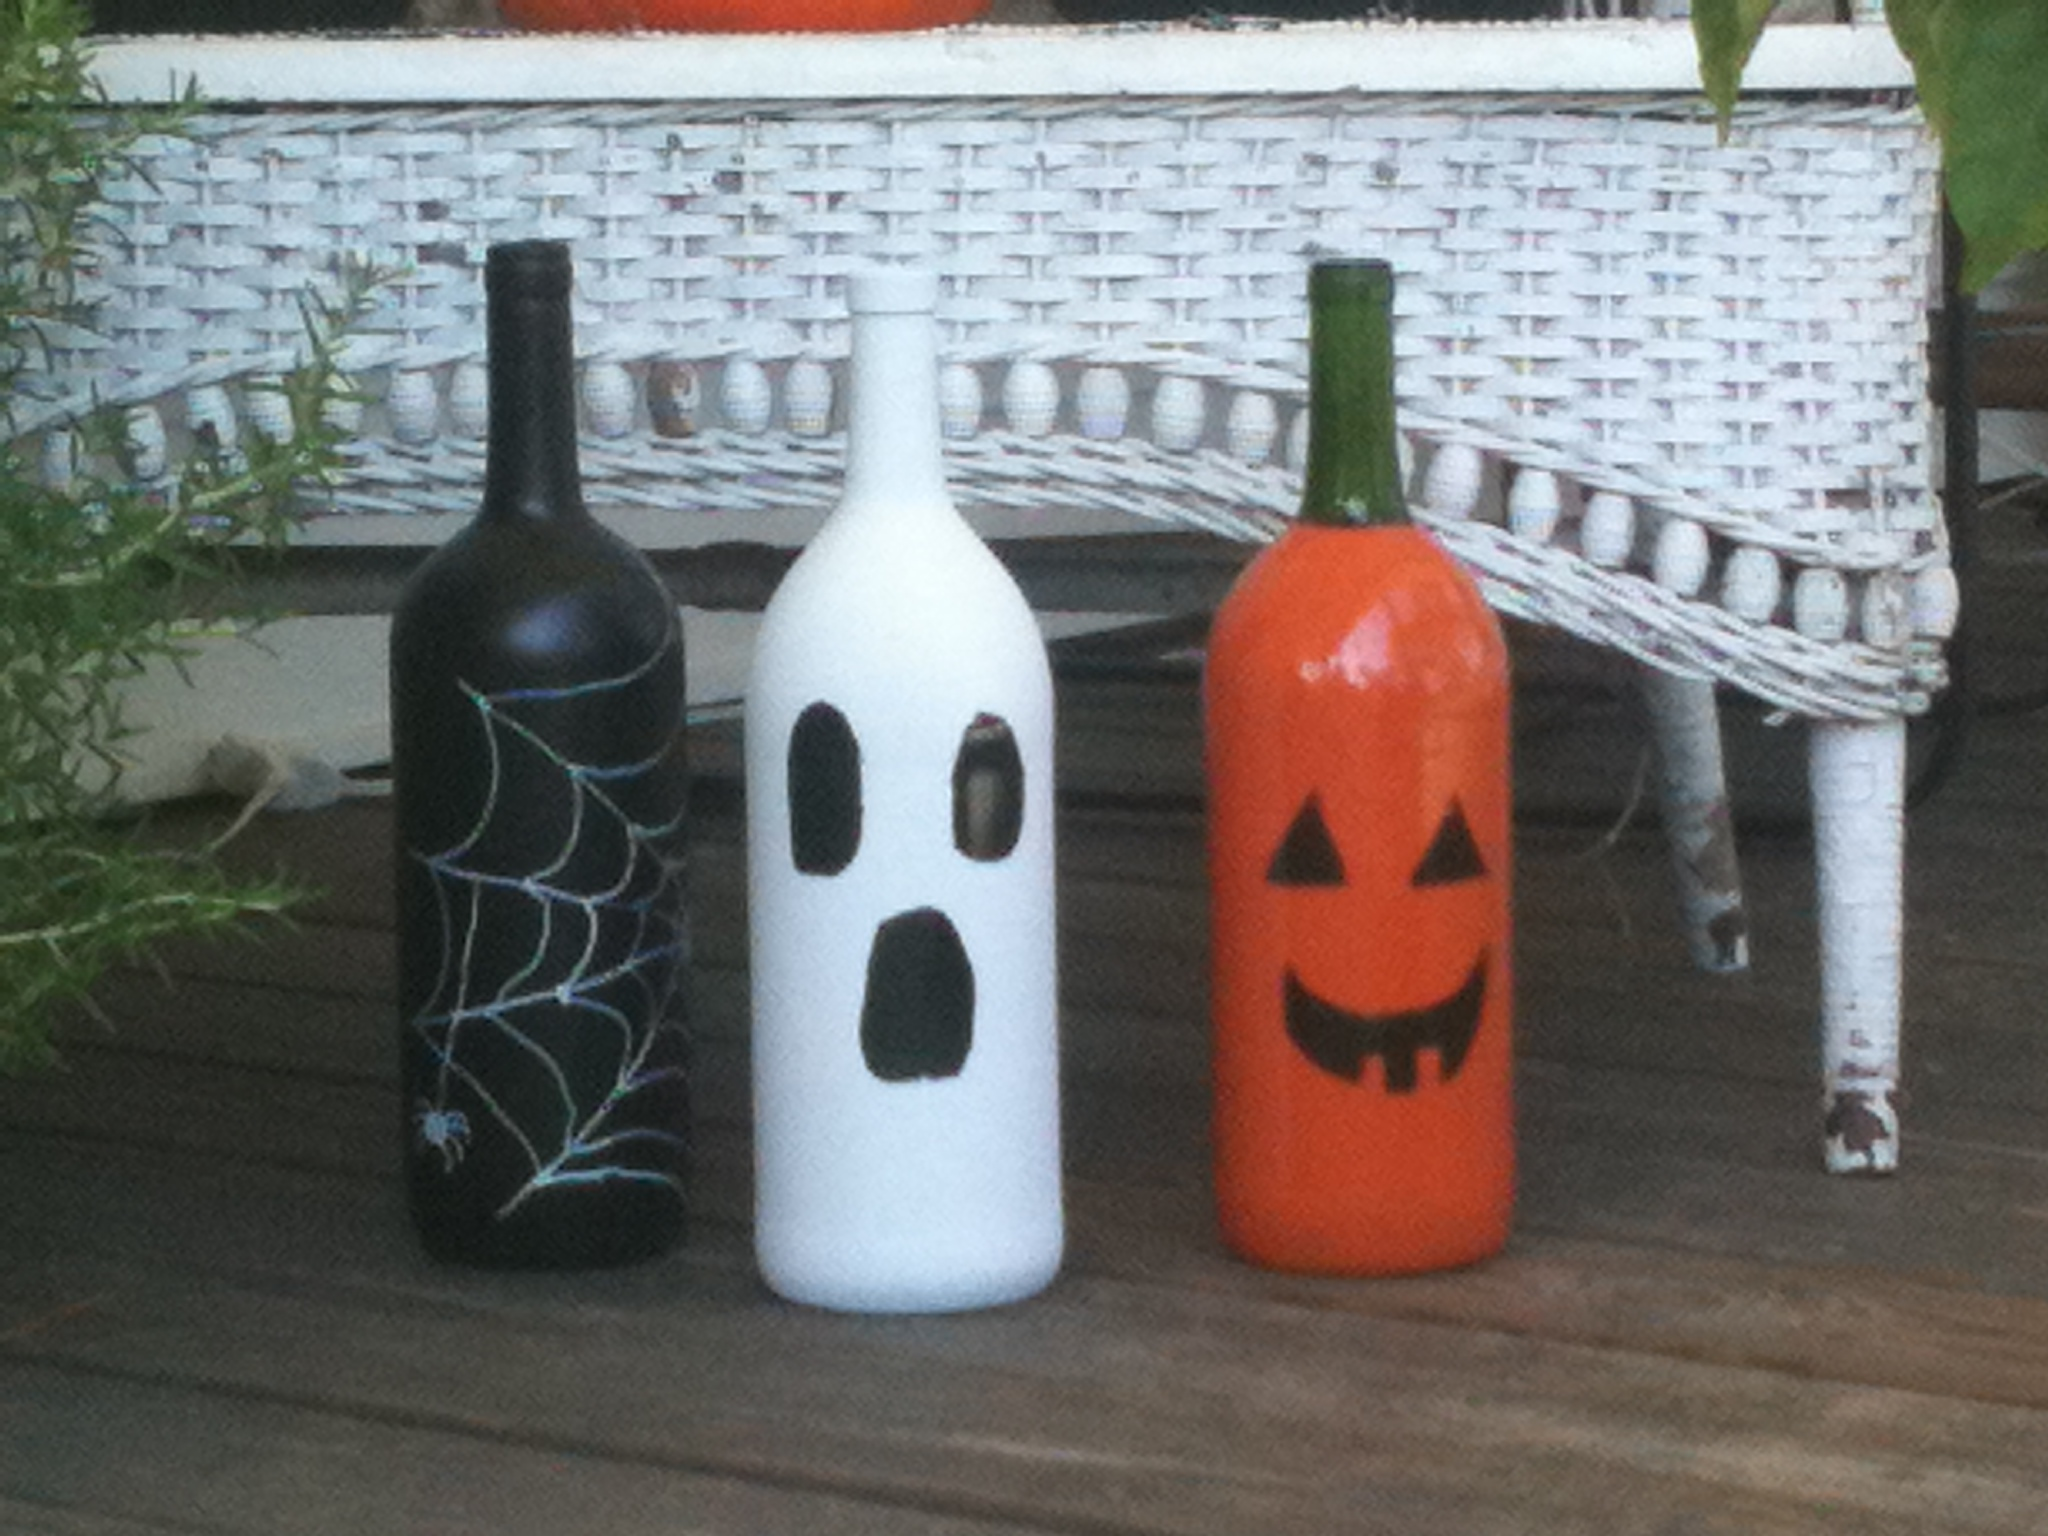 diy halloween decorations view from our front porch swing. Black Bedroom Furniture Sets. Home Design Ideas